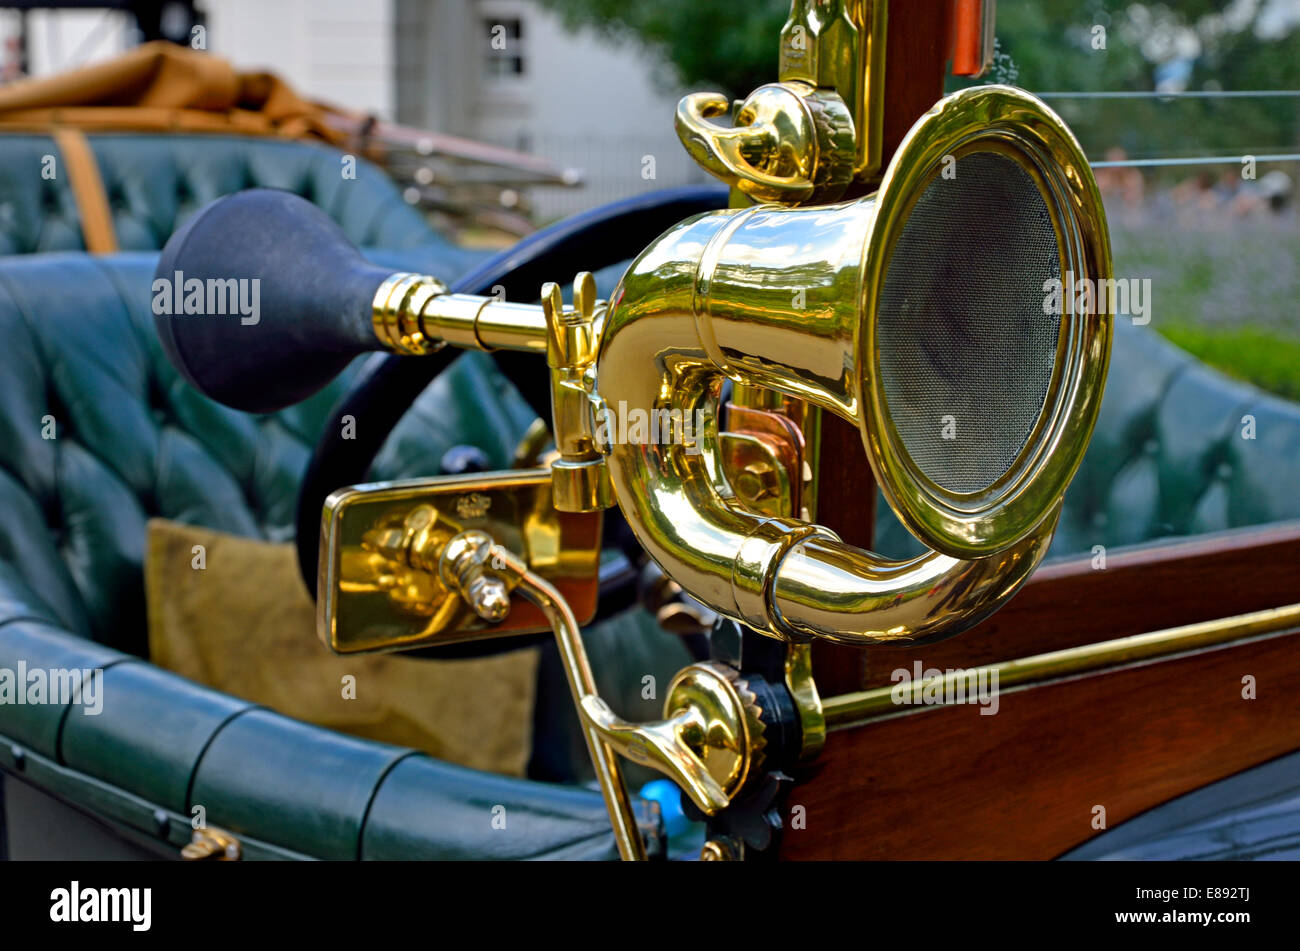 1913 Sunbeam 12/16 open Tourer (HY 77) Horn - Stock Image